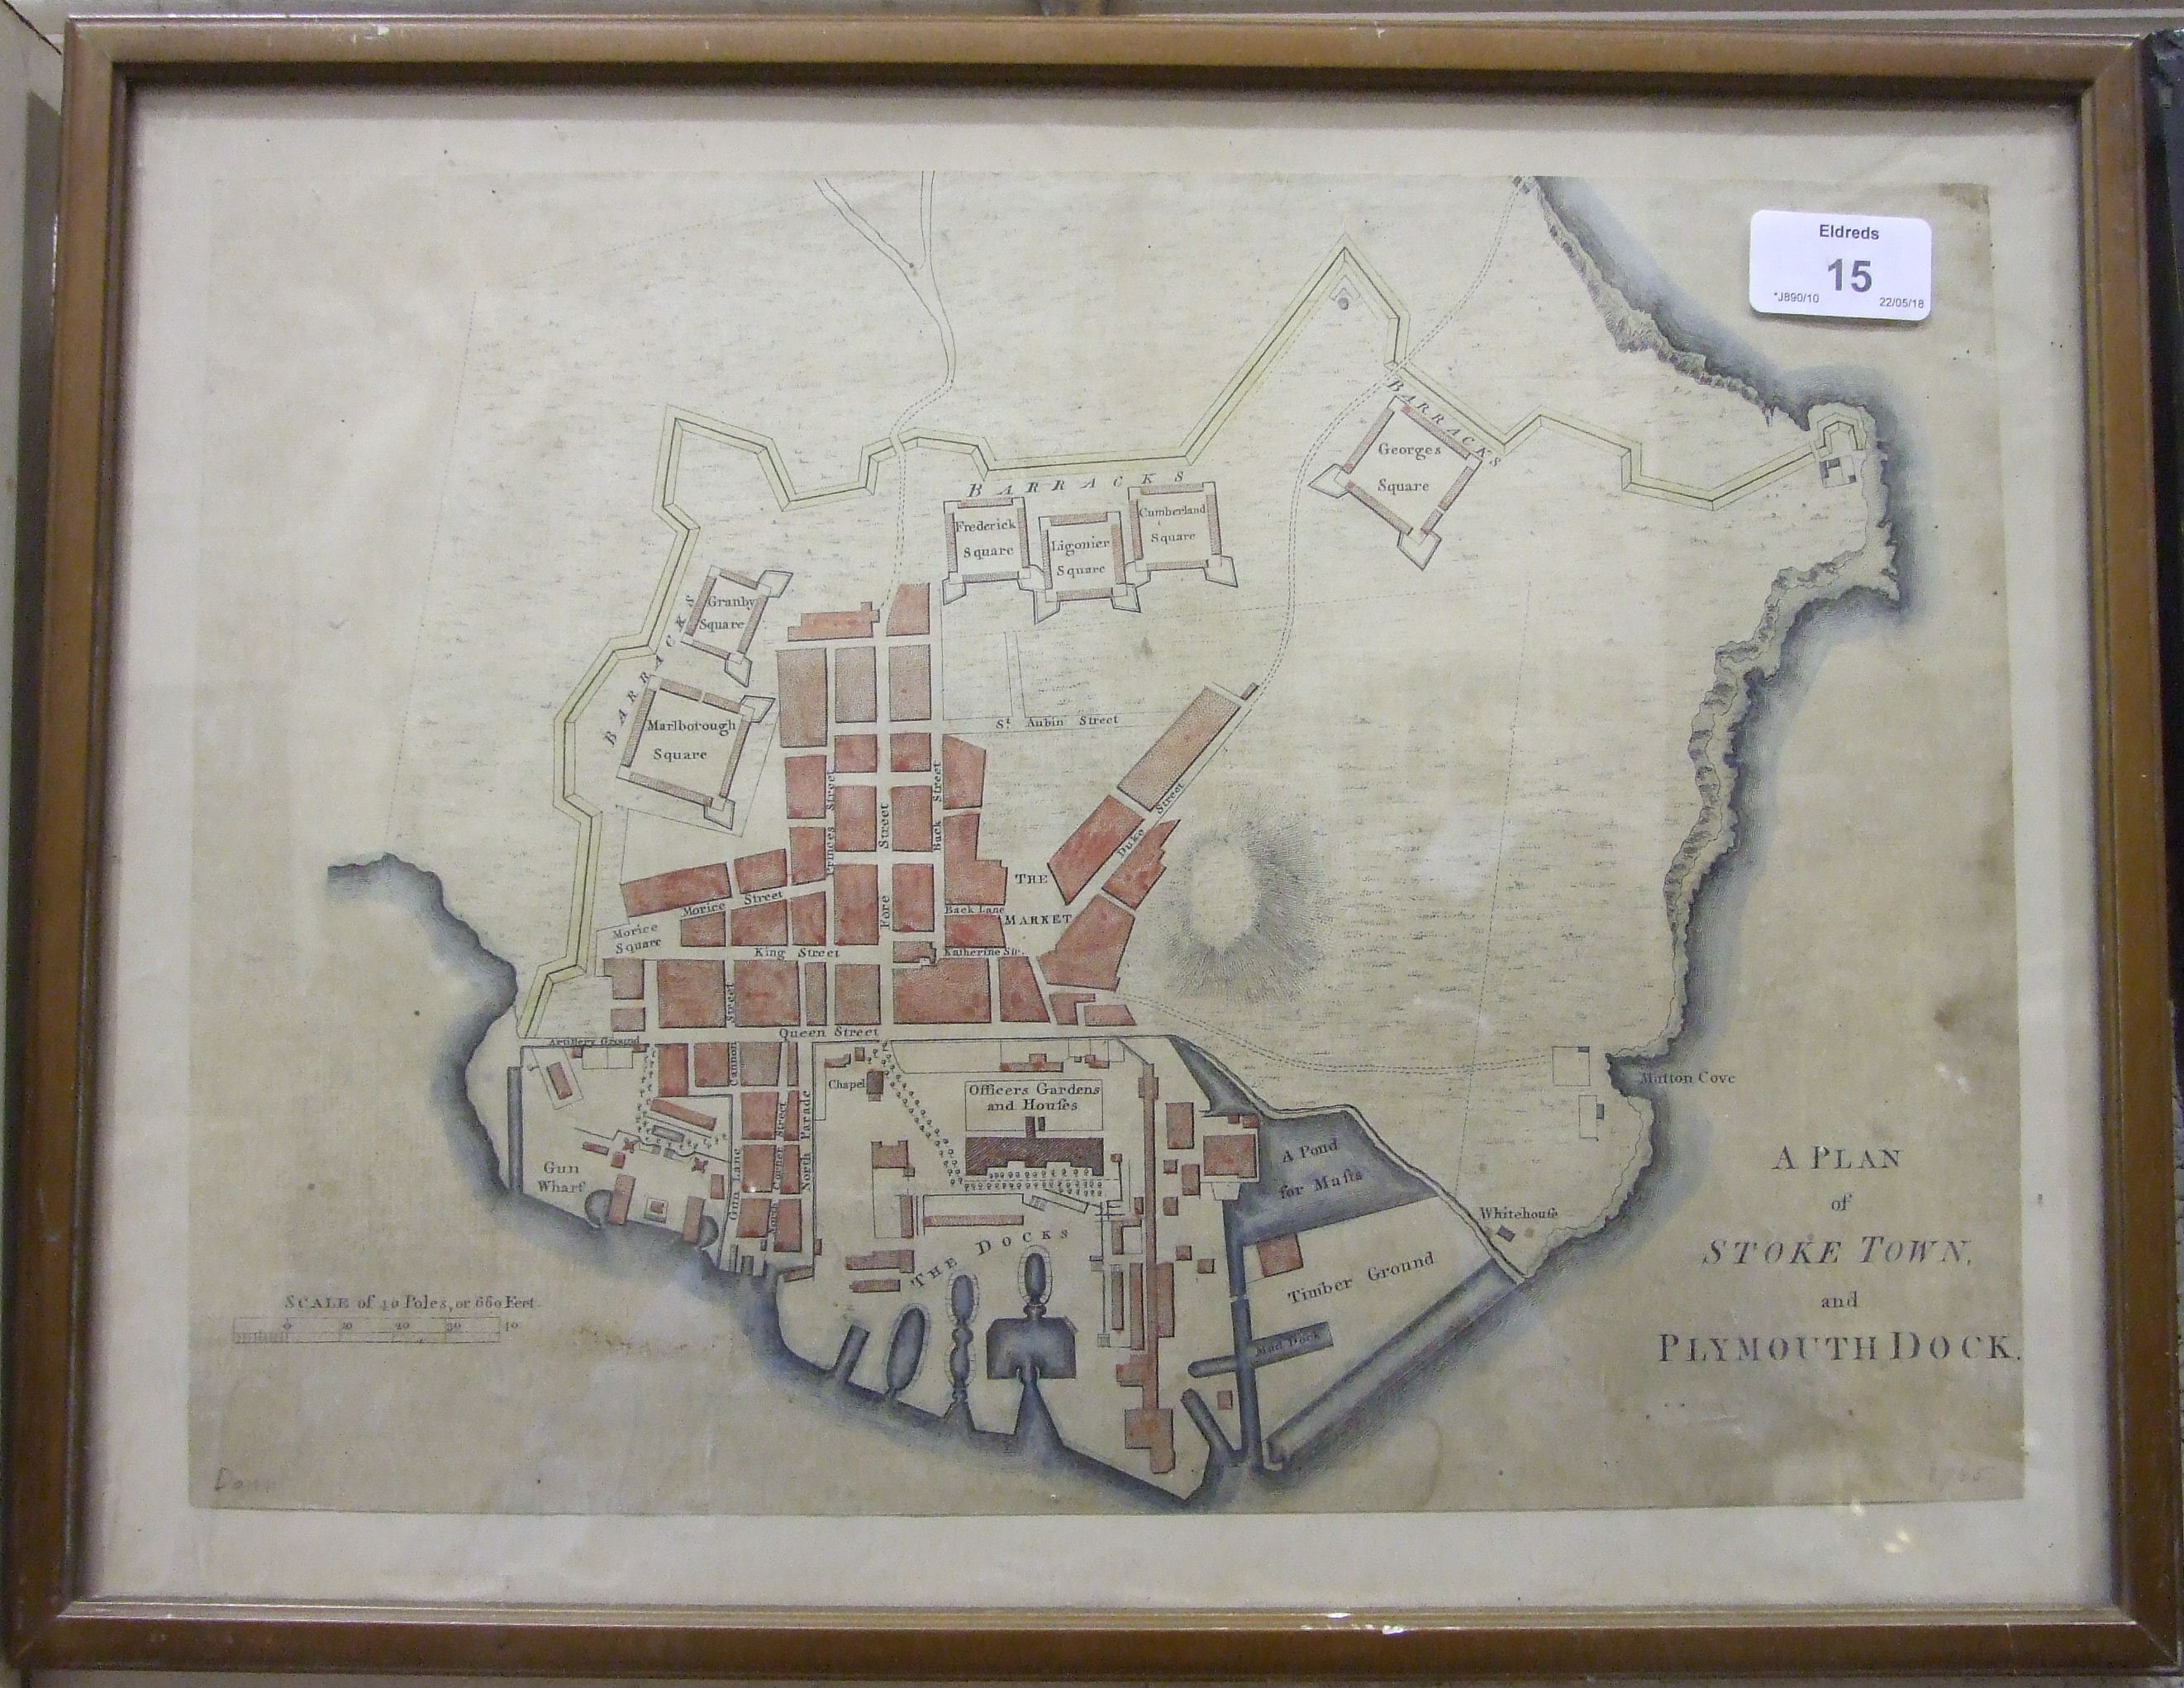 After Benjamin Donn, 'A plan of Stoke Town and Plymouth Dock', later hand-coloured, 26.5 x 37cm,